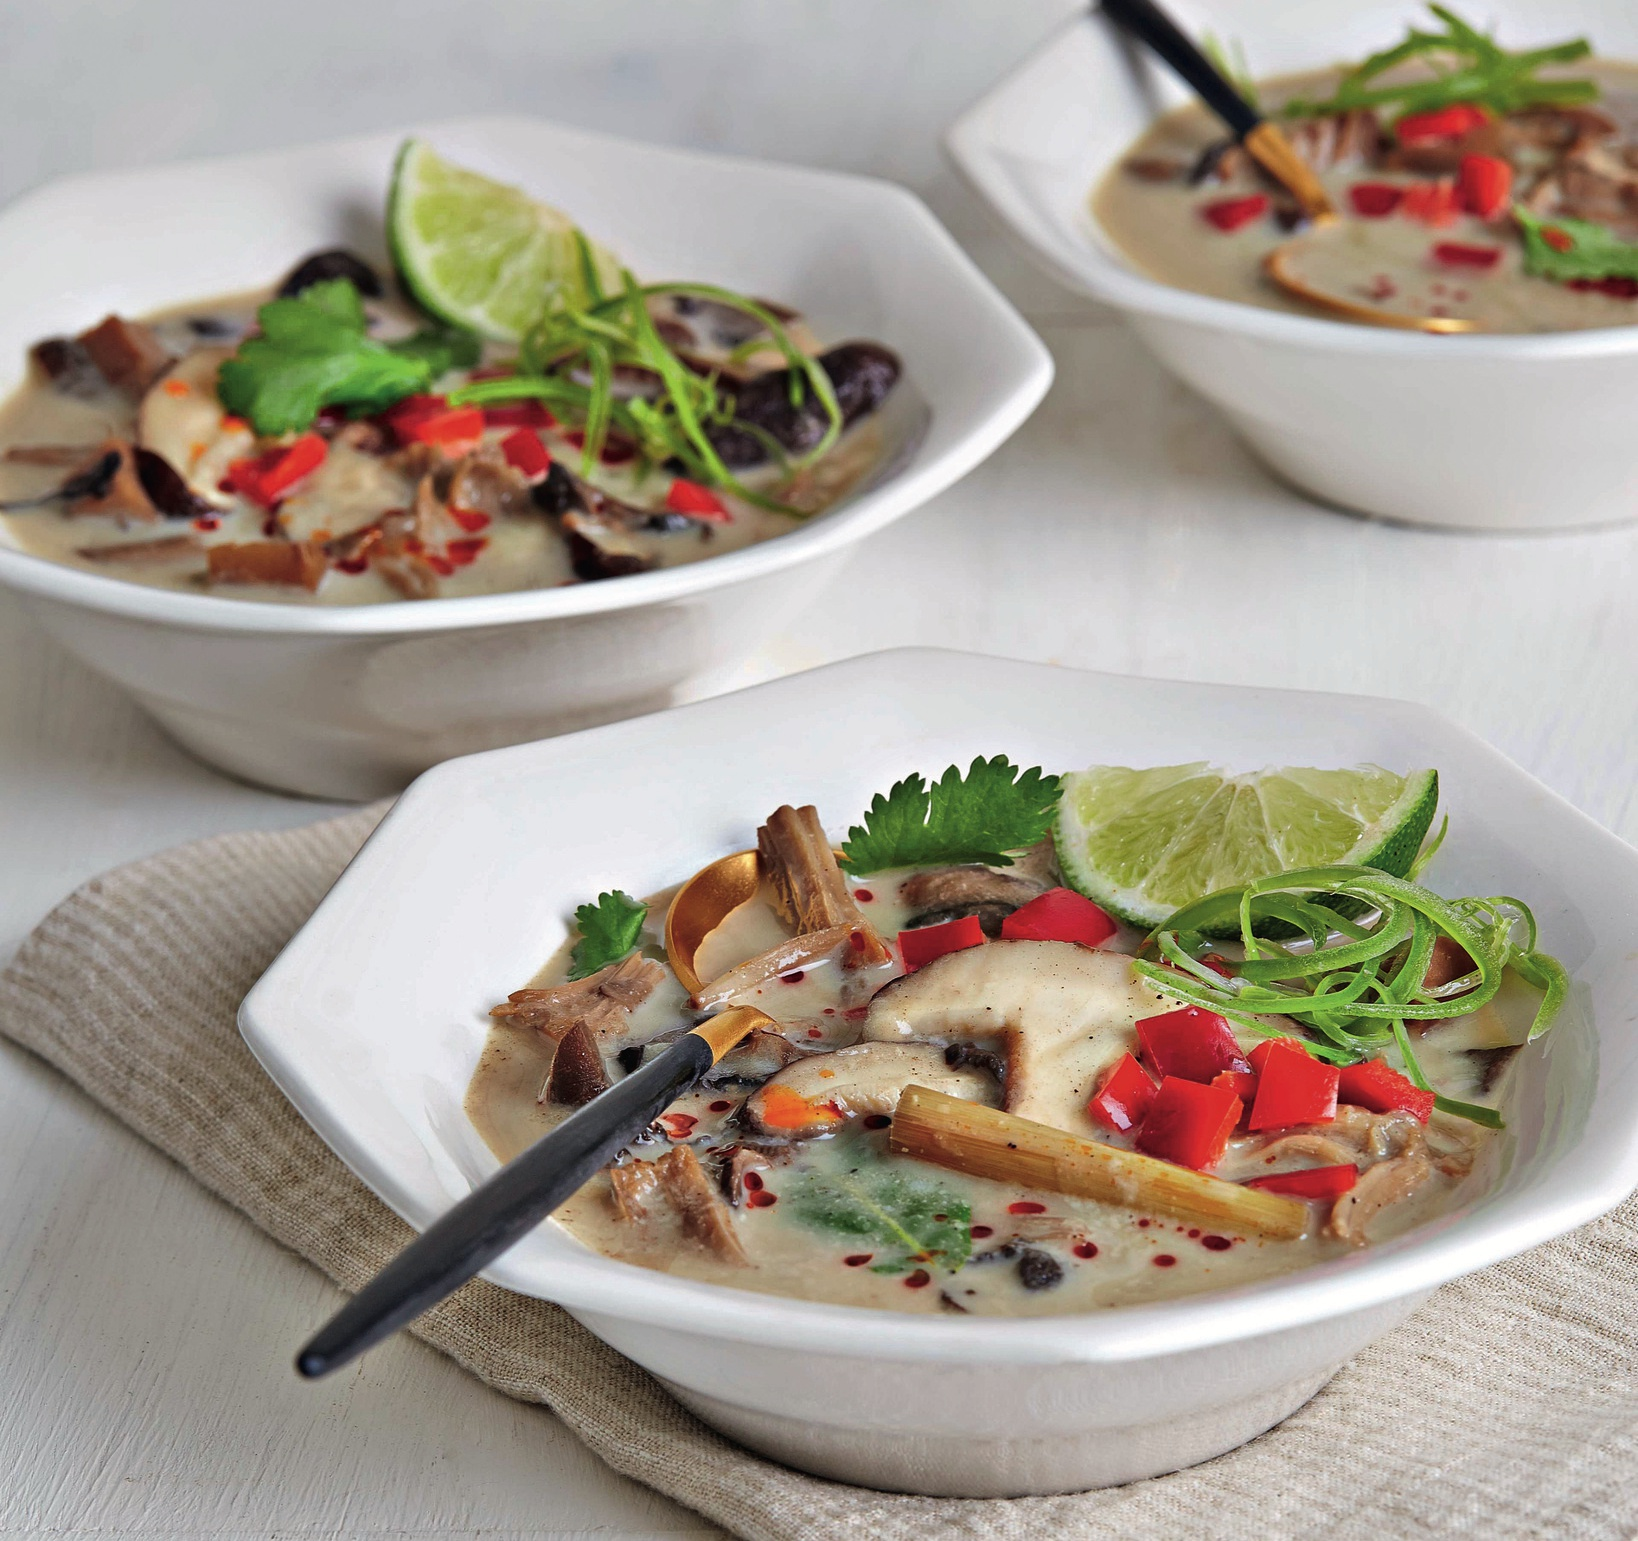 coconut soup with mushrooms and jackfruit